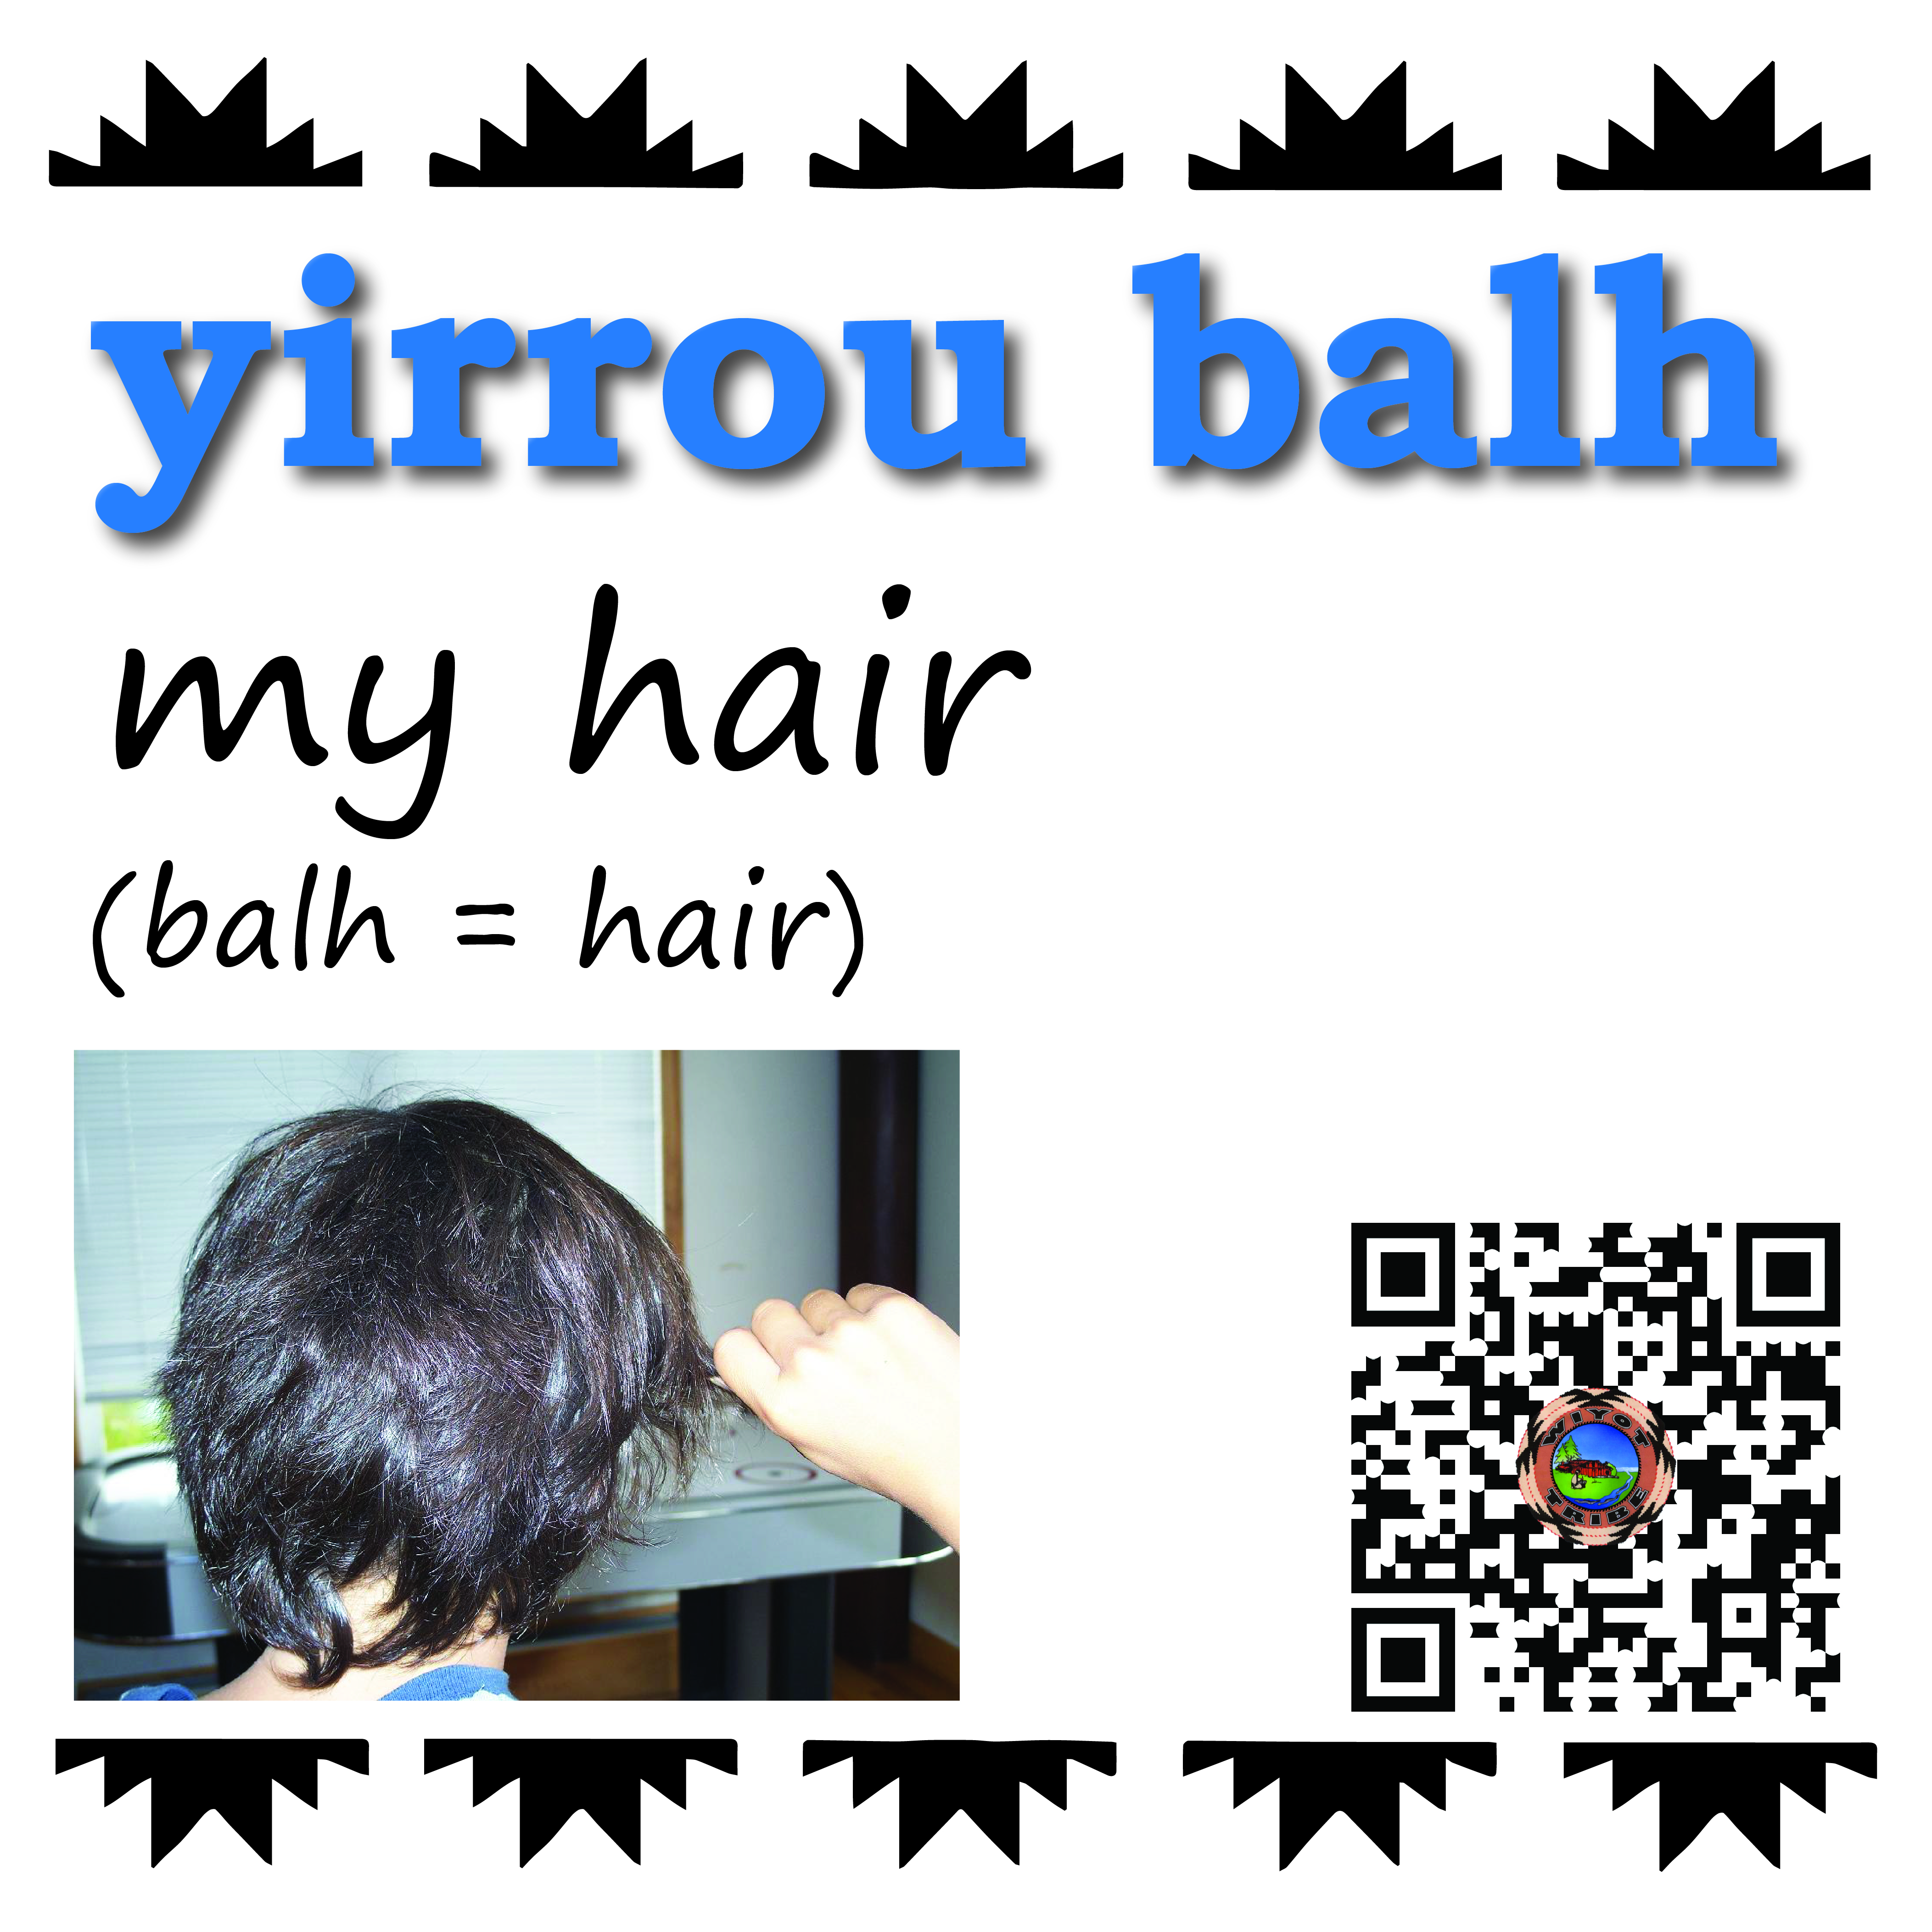 yirrou_balh_my_hair